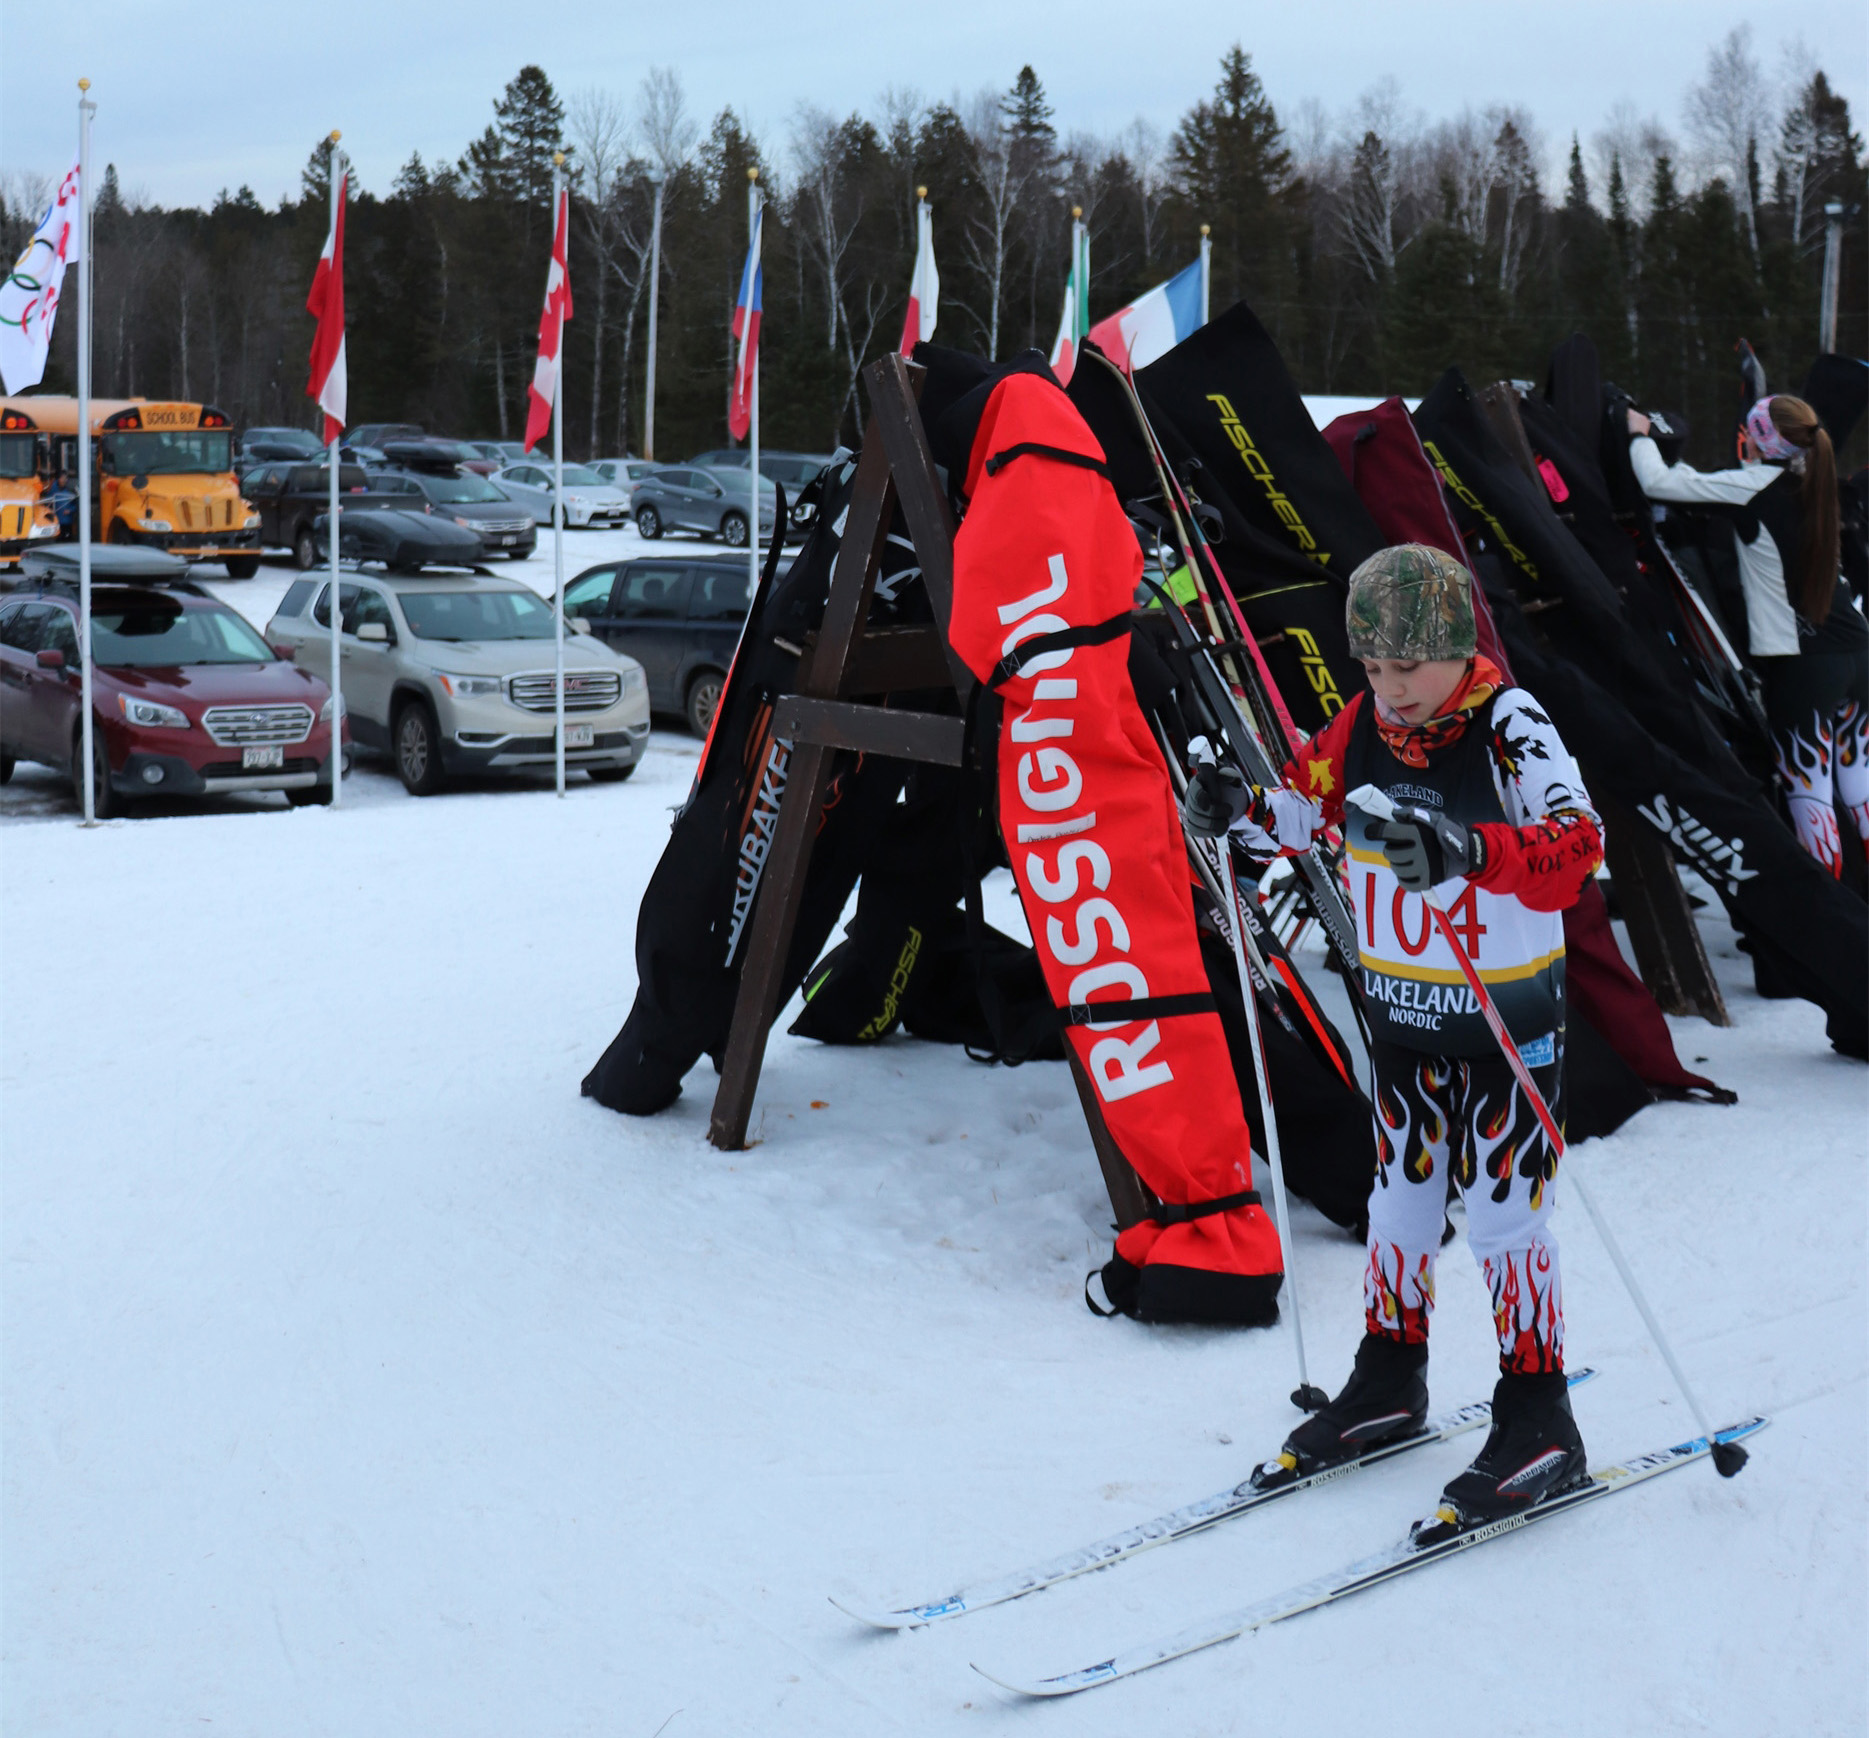 This young skier practices for the middle school ski race at Minocqua Winter Park. Kim Johnson photo